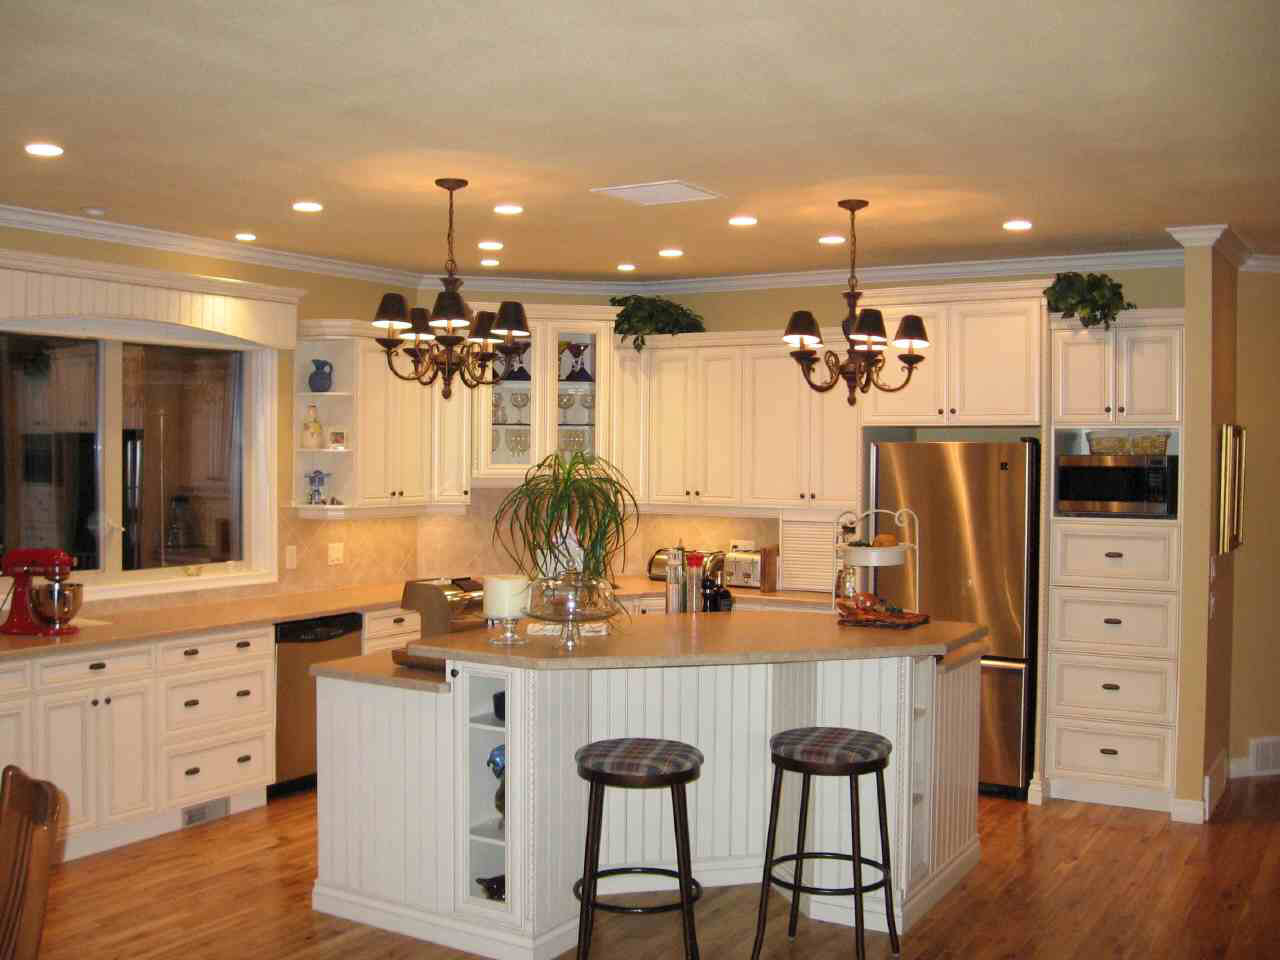 Images Of Beautiful Kitchens Adorable With Country Kitchen Design Ideas Picture